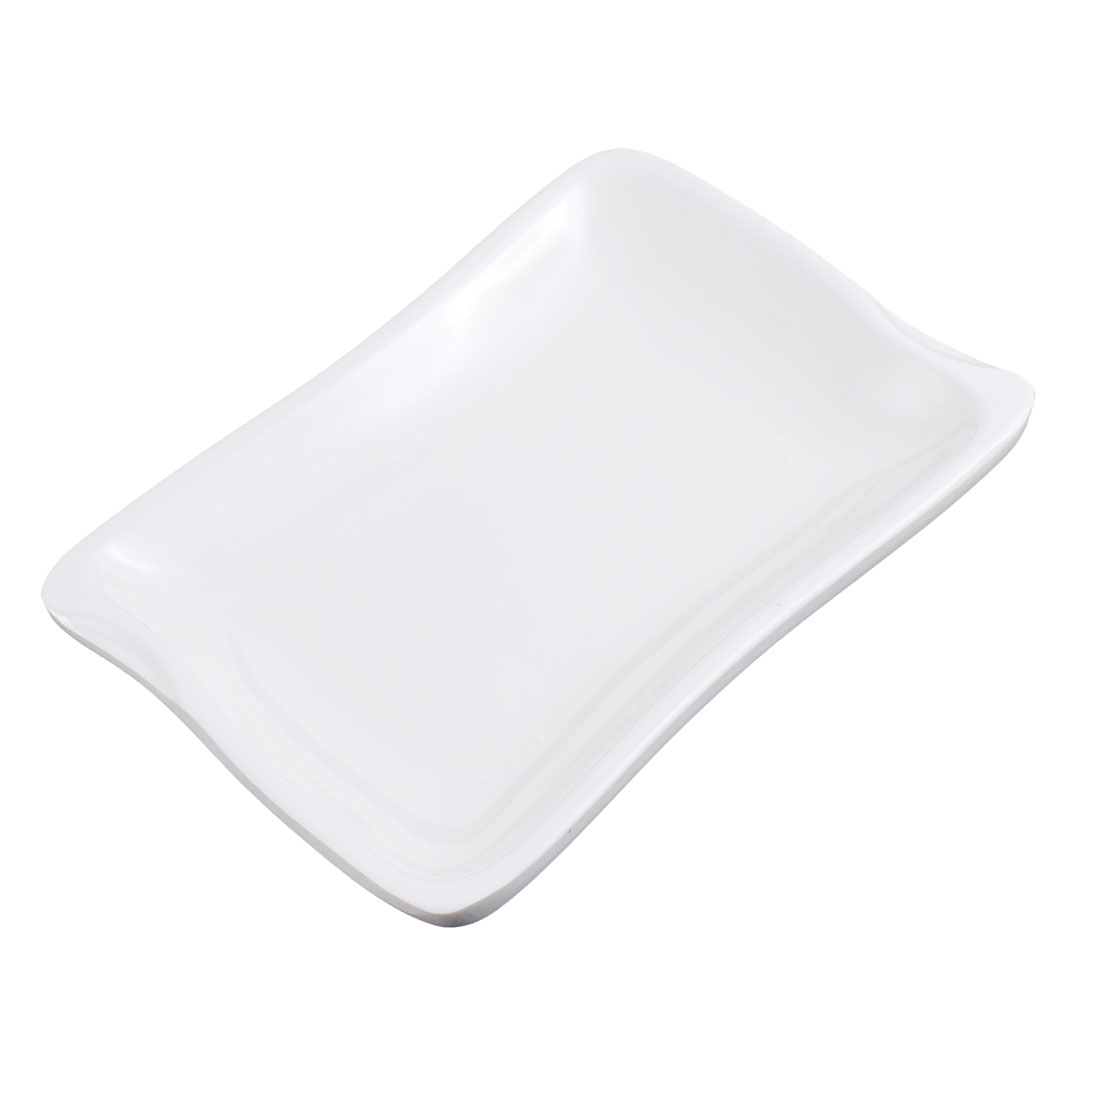 Rectangle Soy Sauce Dipping Sushi Mini Dish Plate 5.5 Inch Length White